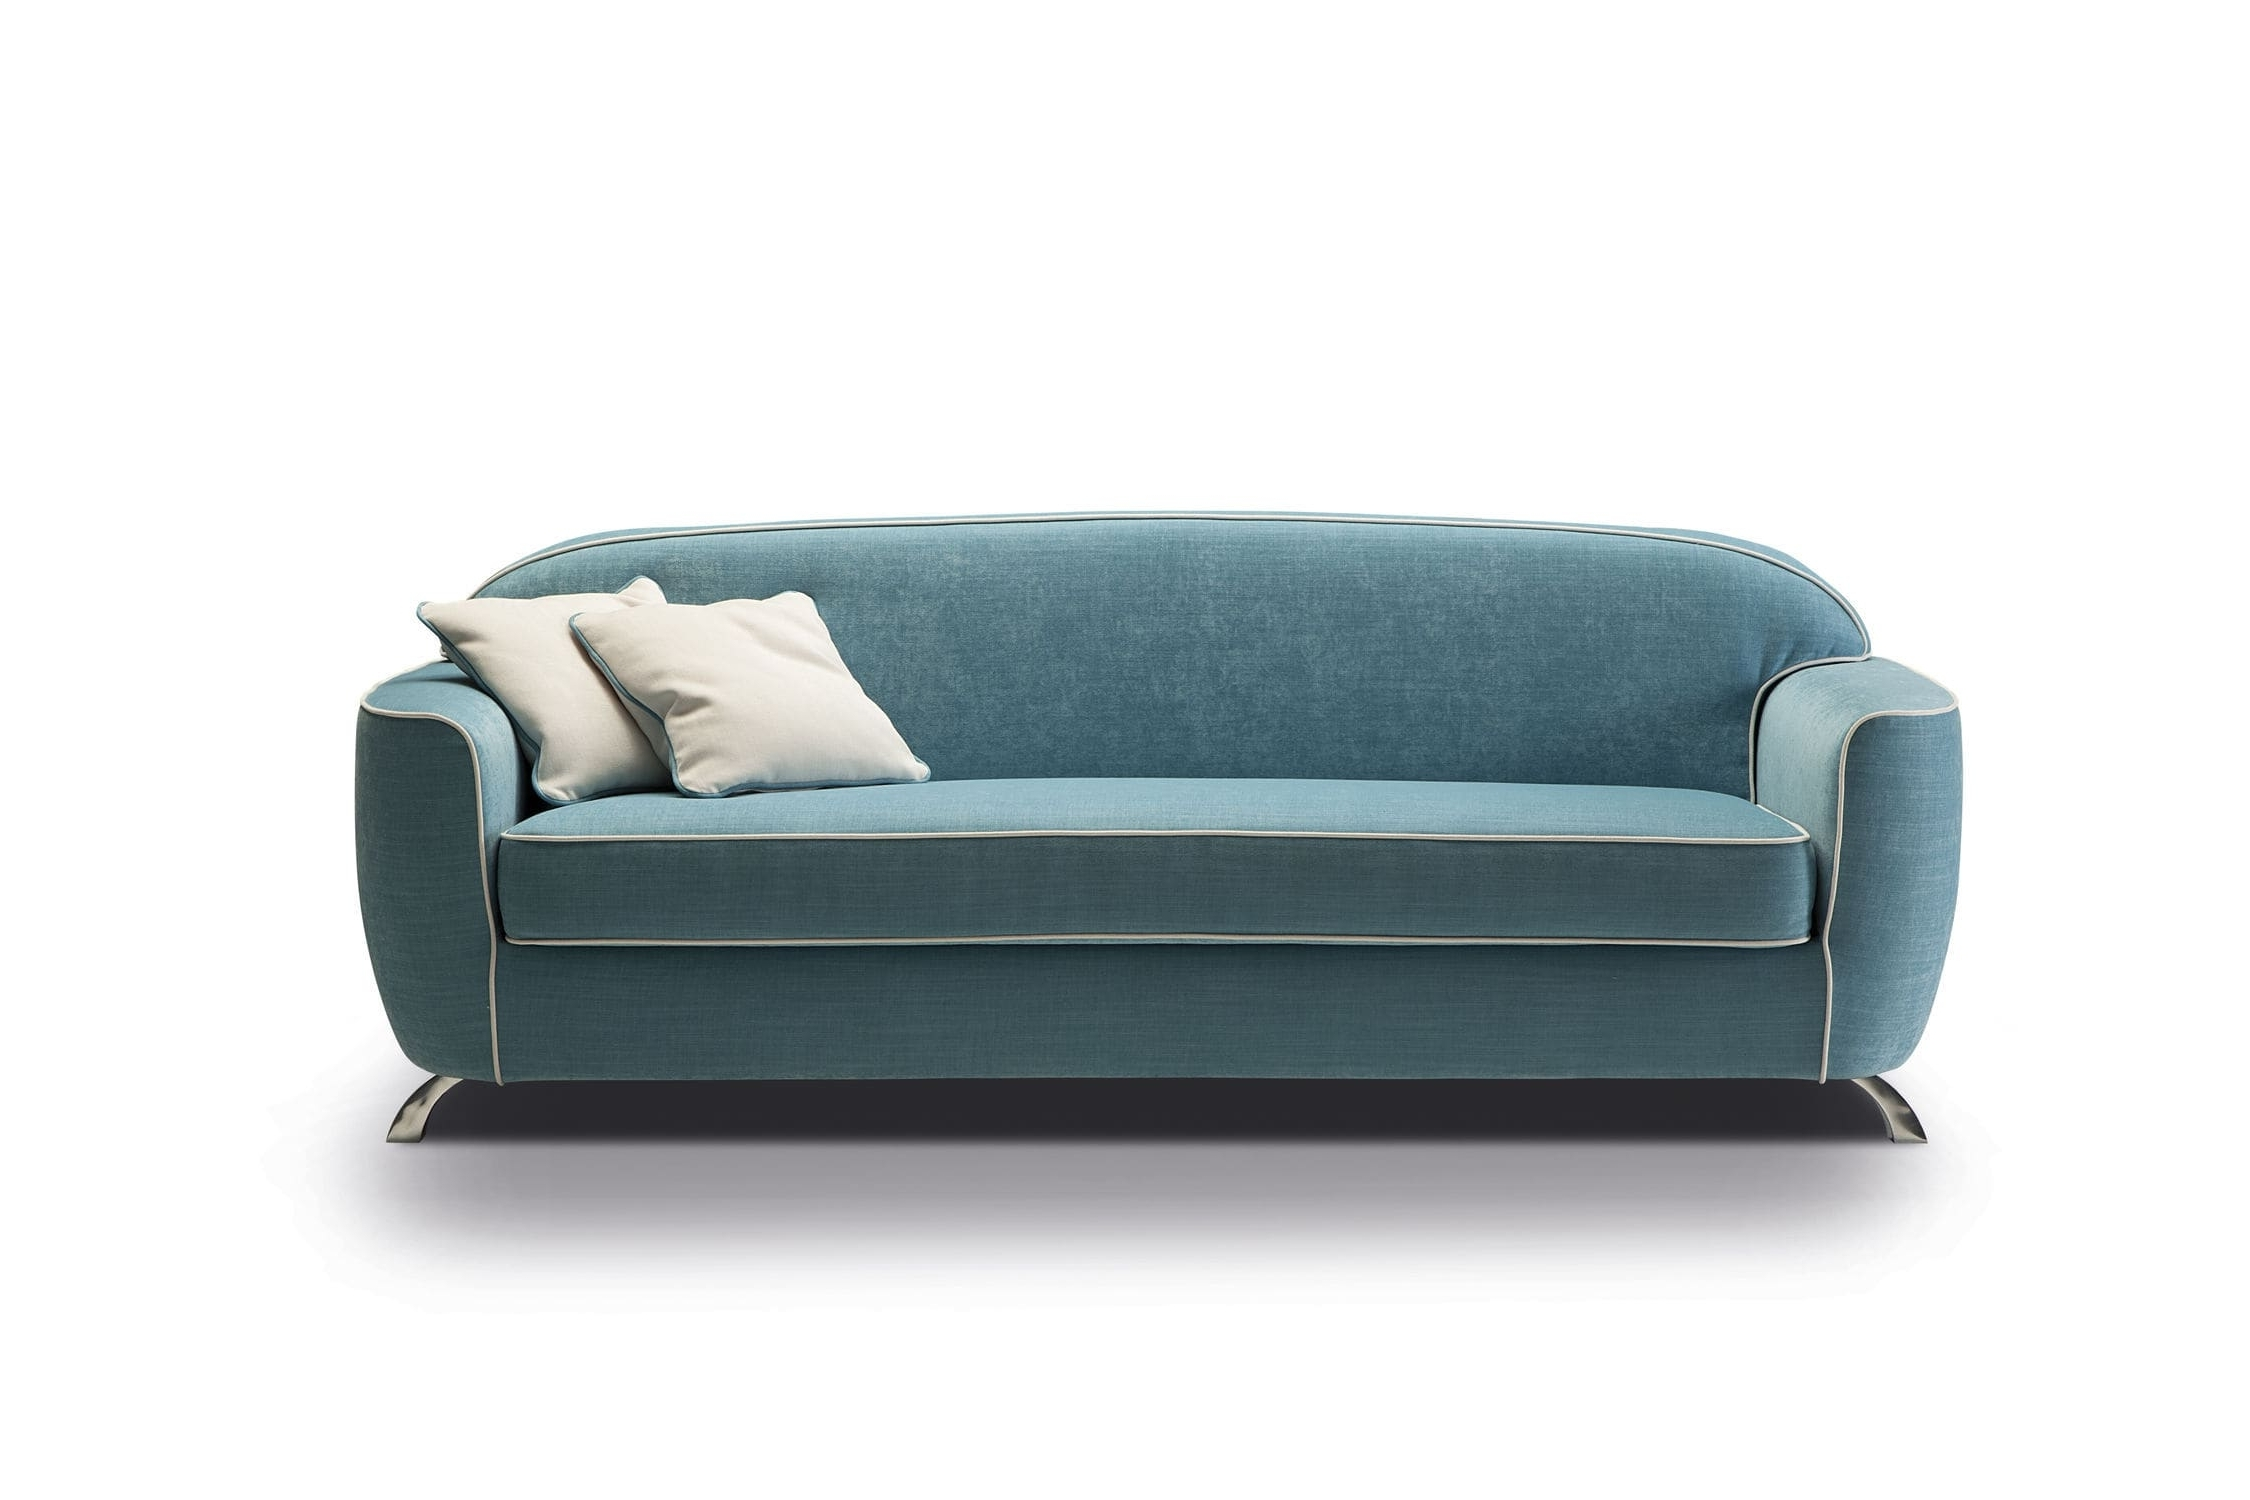 Famous Sofas With Removable Cover Intended For Sofa Bed / Contemporary / Fabric / With Washable Removable Cover (View 7 of 15)